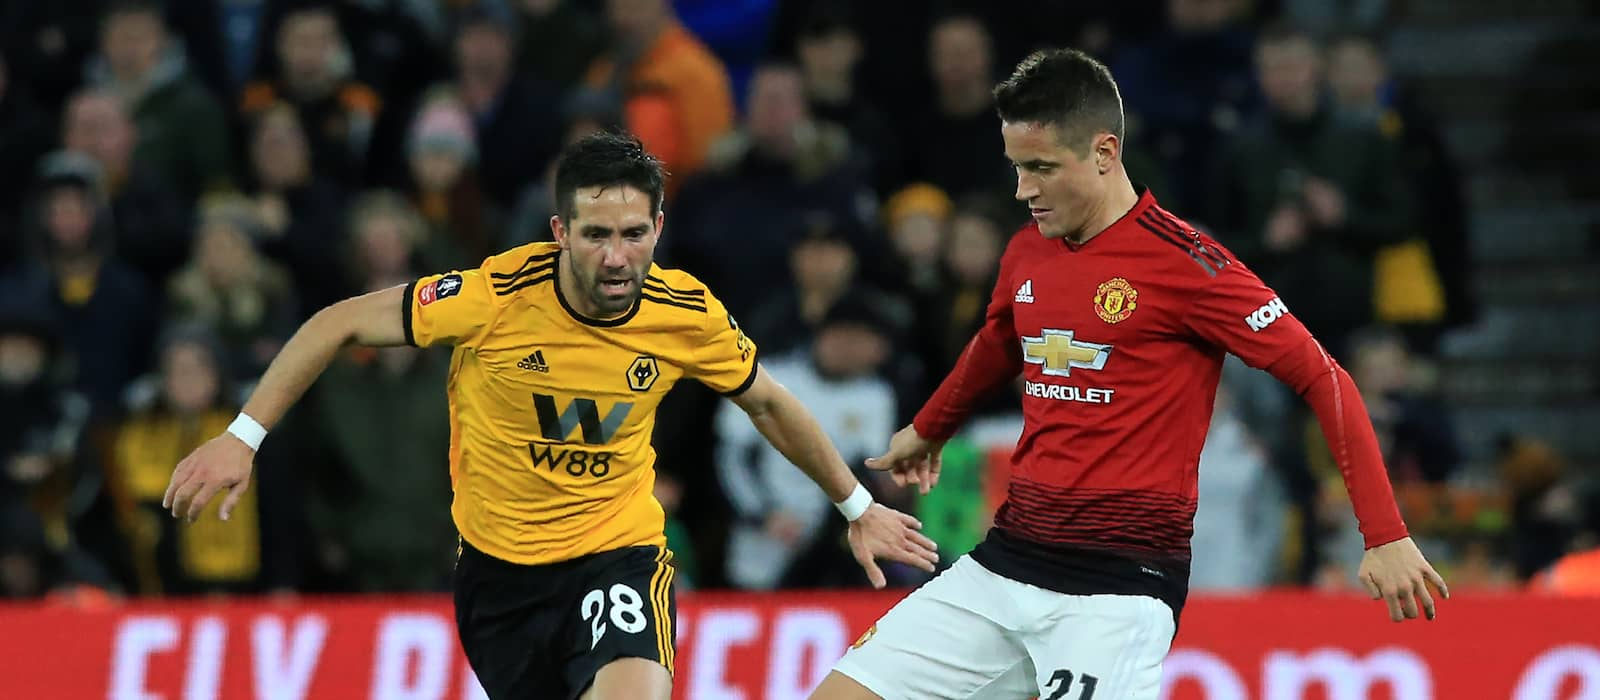 Ander Herrera reveals 'disagreements' with Manchester United led to Paris Saint-Germain move